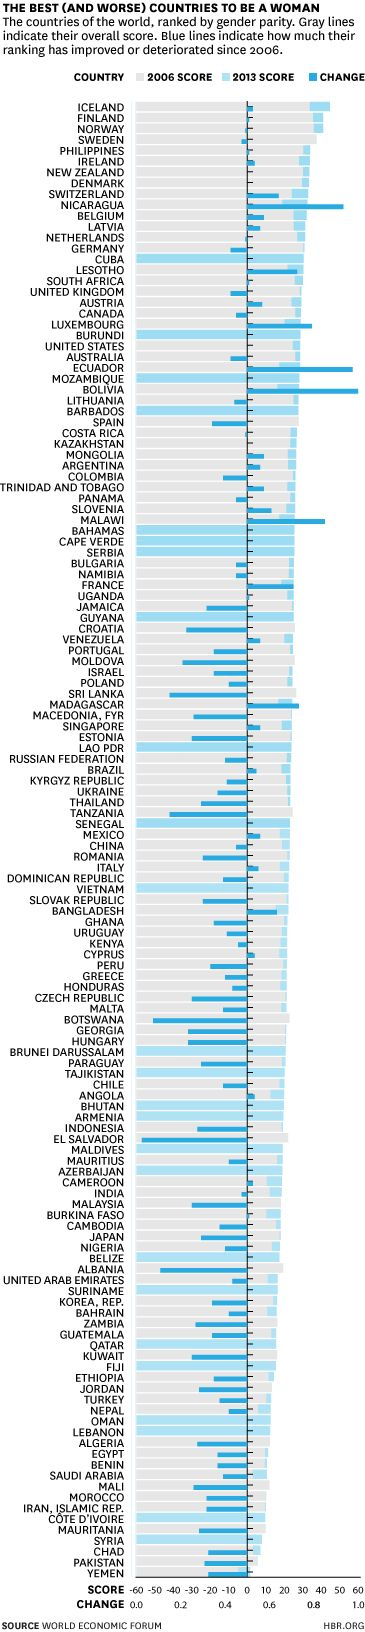 The Best (and Worst) Countries to Be a Woman #harvard